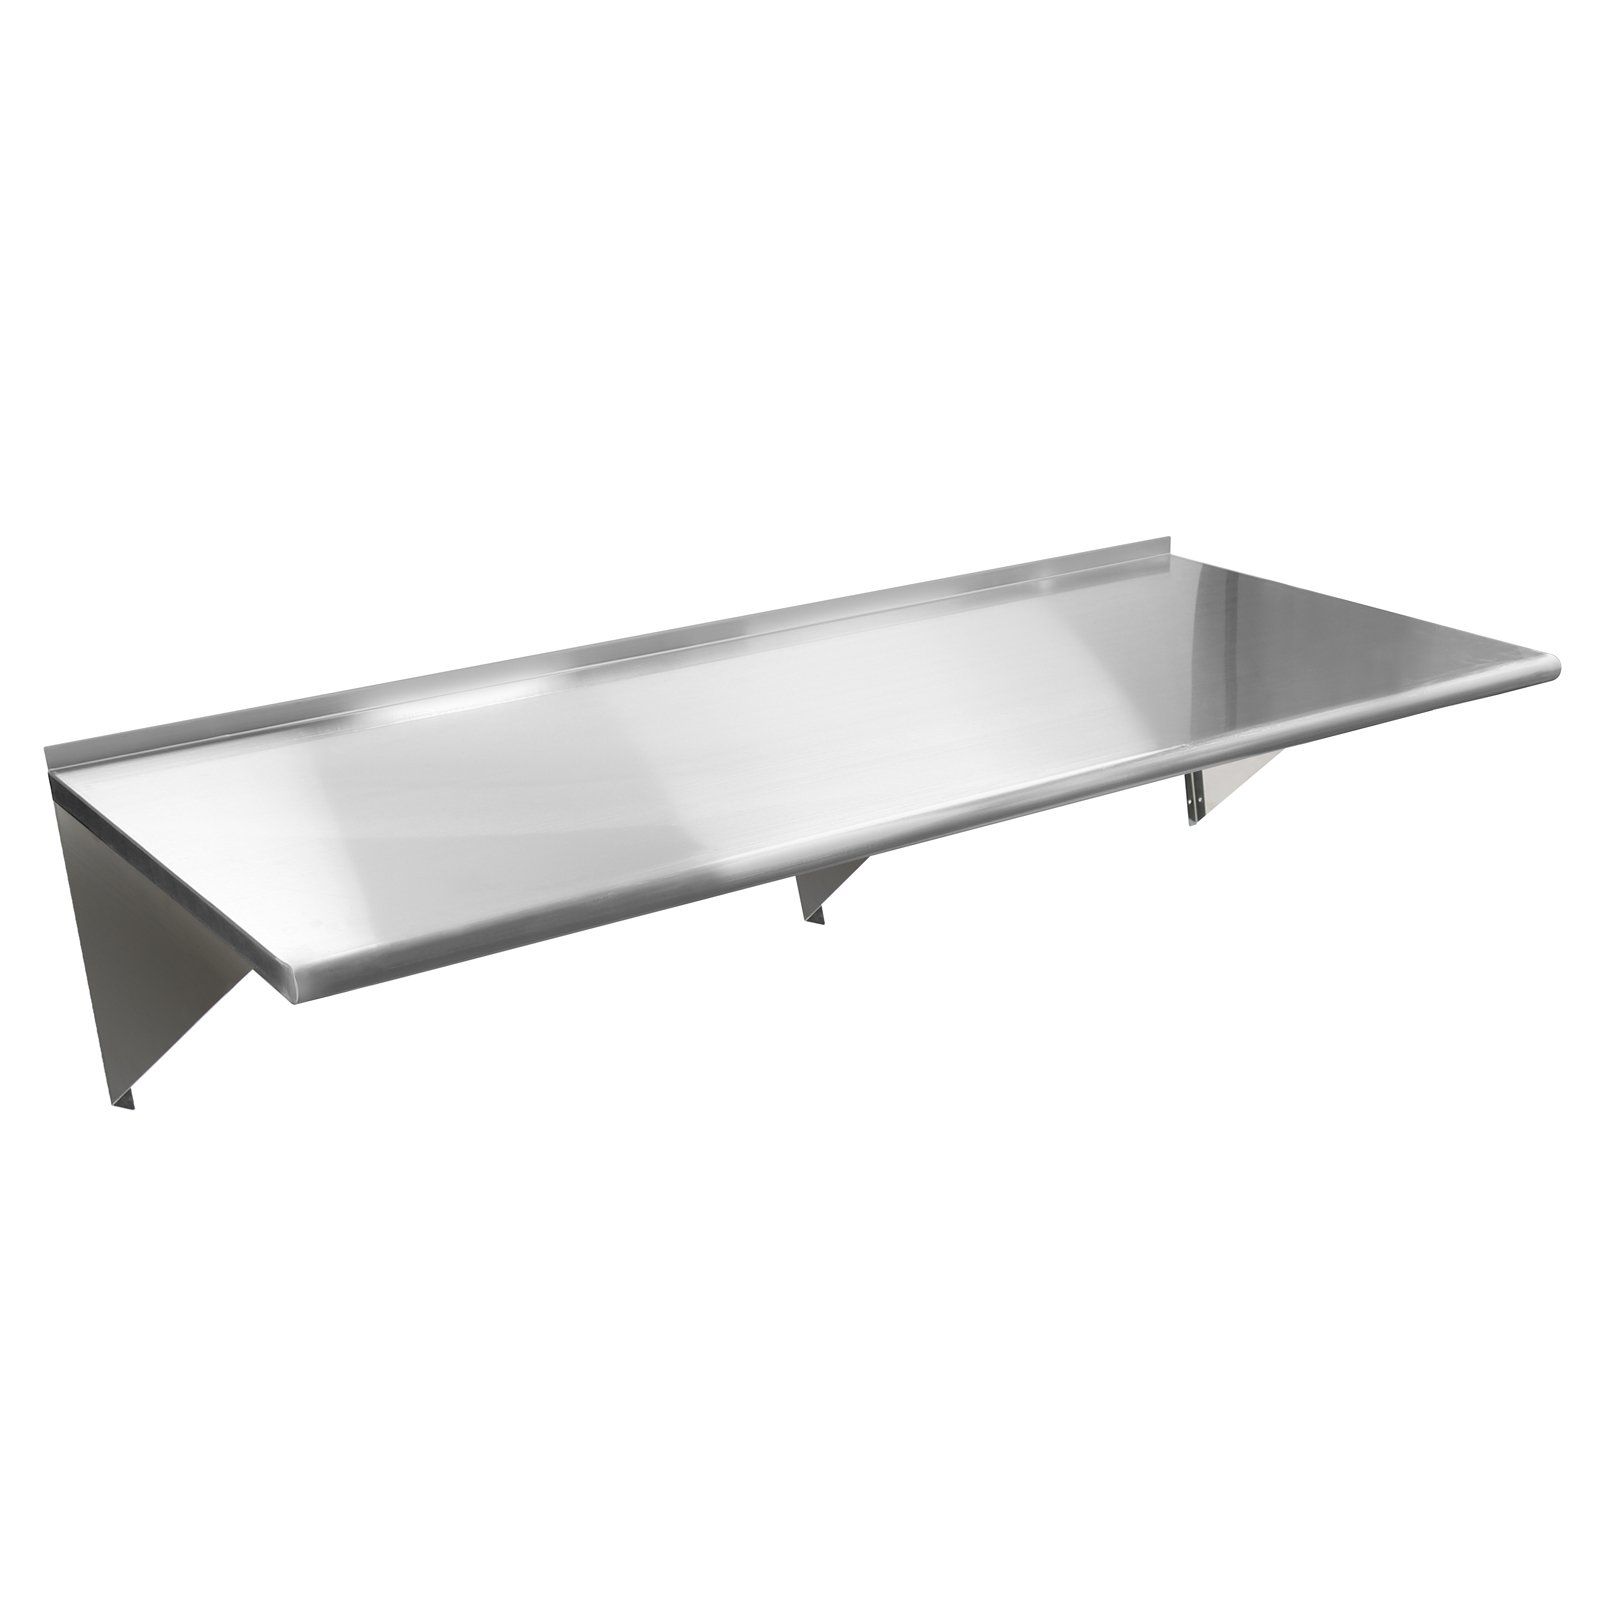 Gridmann NSF Stainless Steel Kitchen Wall Mount Shelf Commercial Restaurant Bar w/ Backsplash - 18'' x 60''